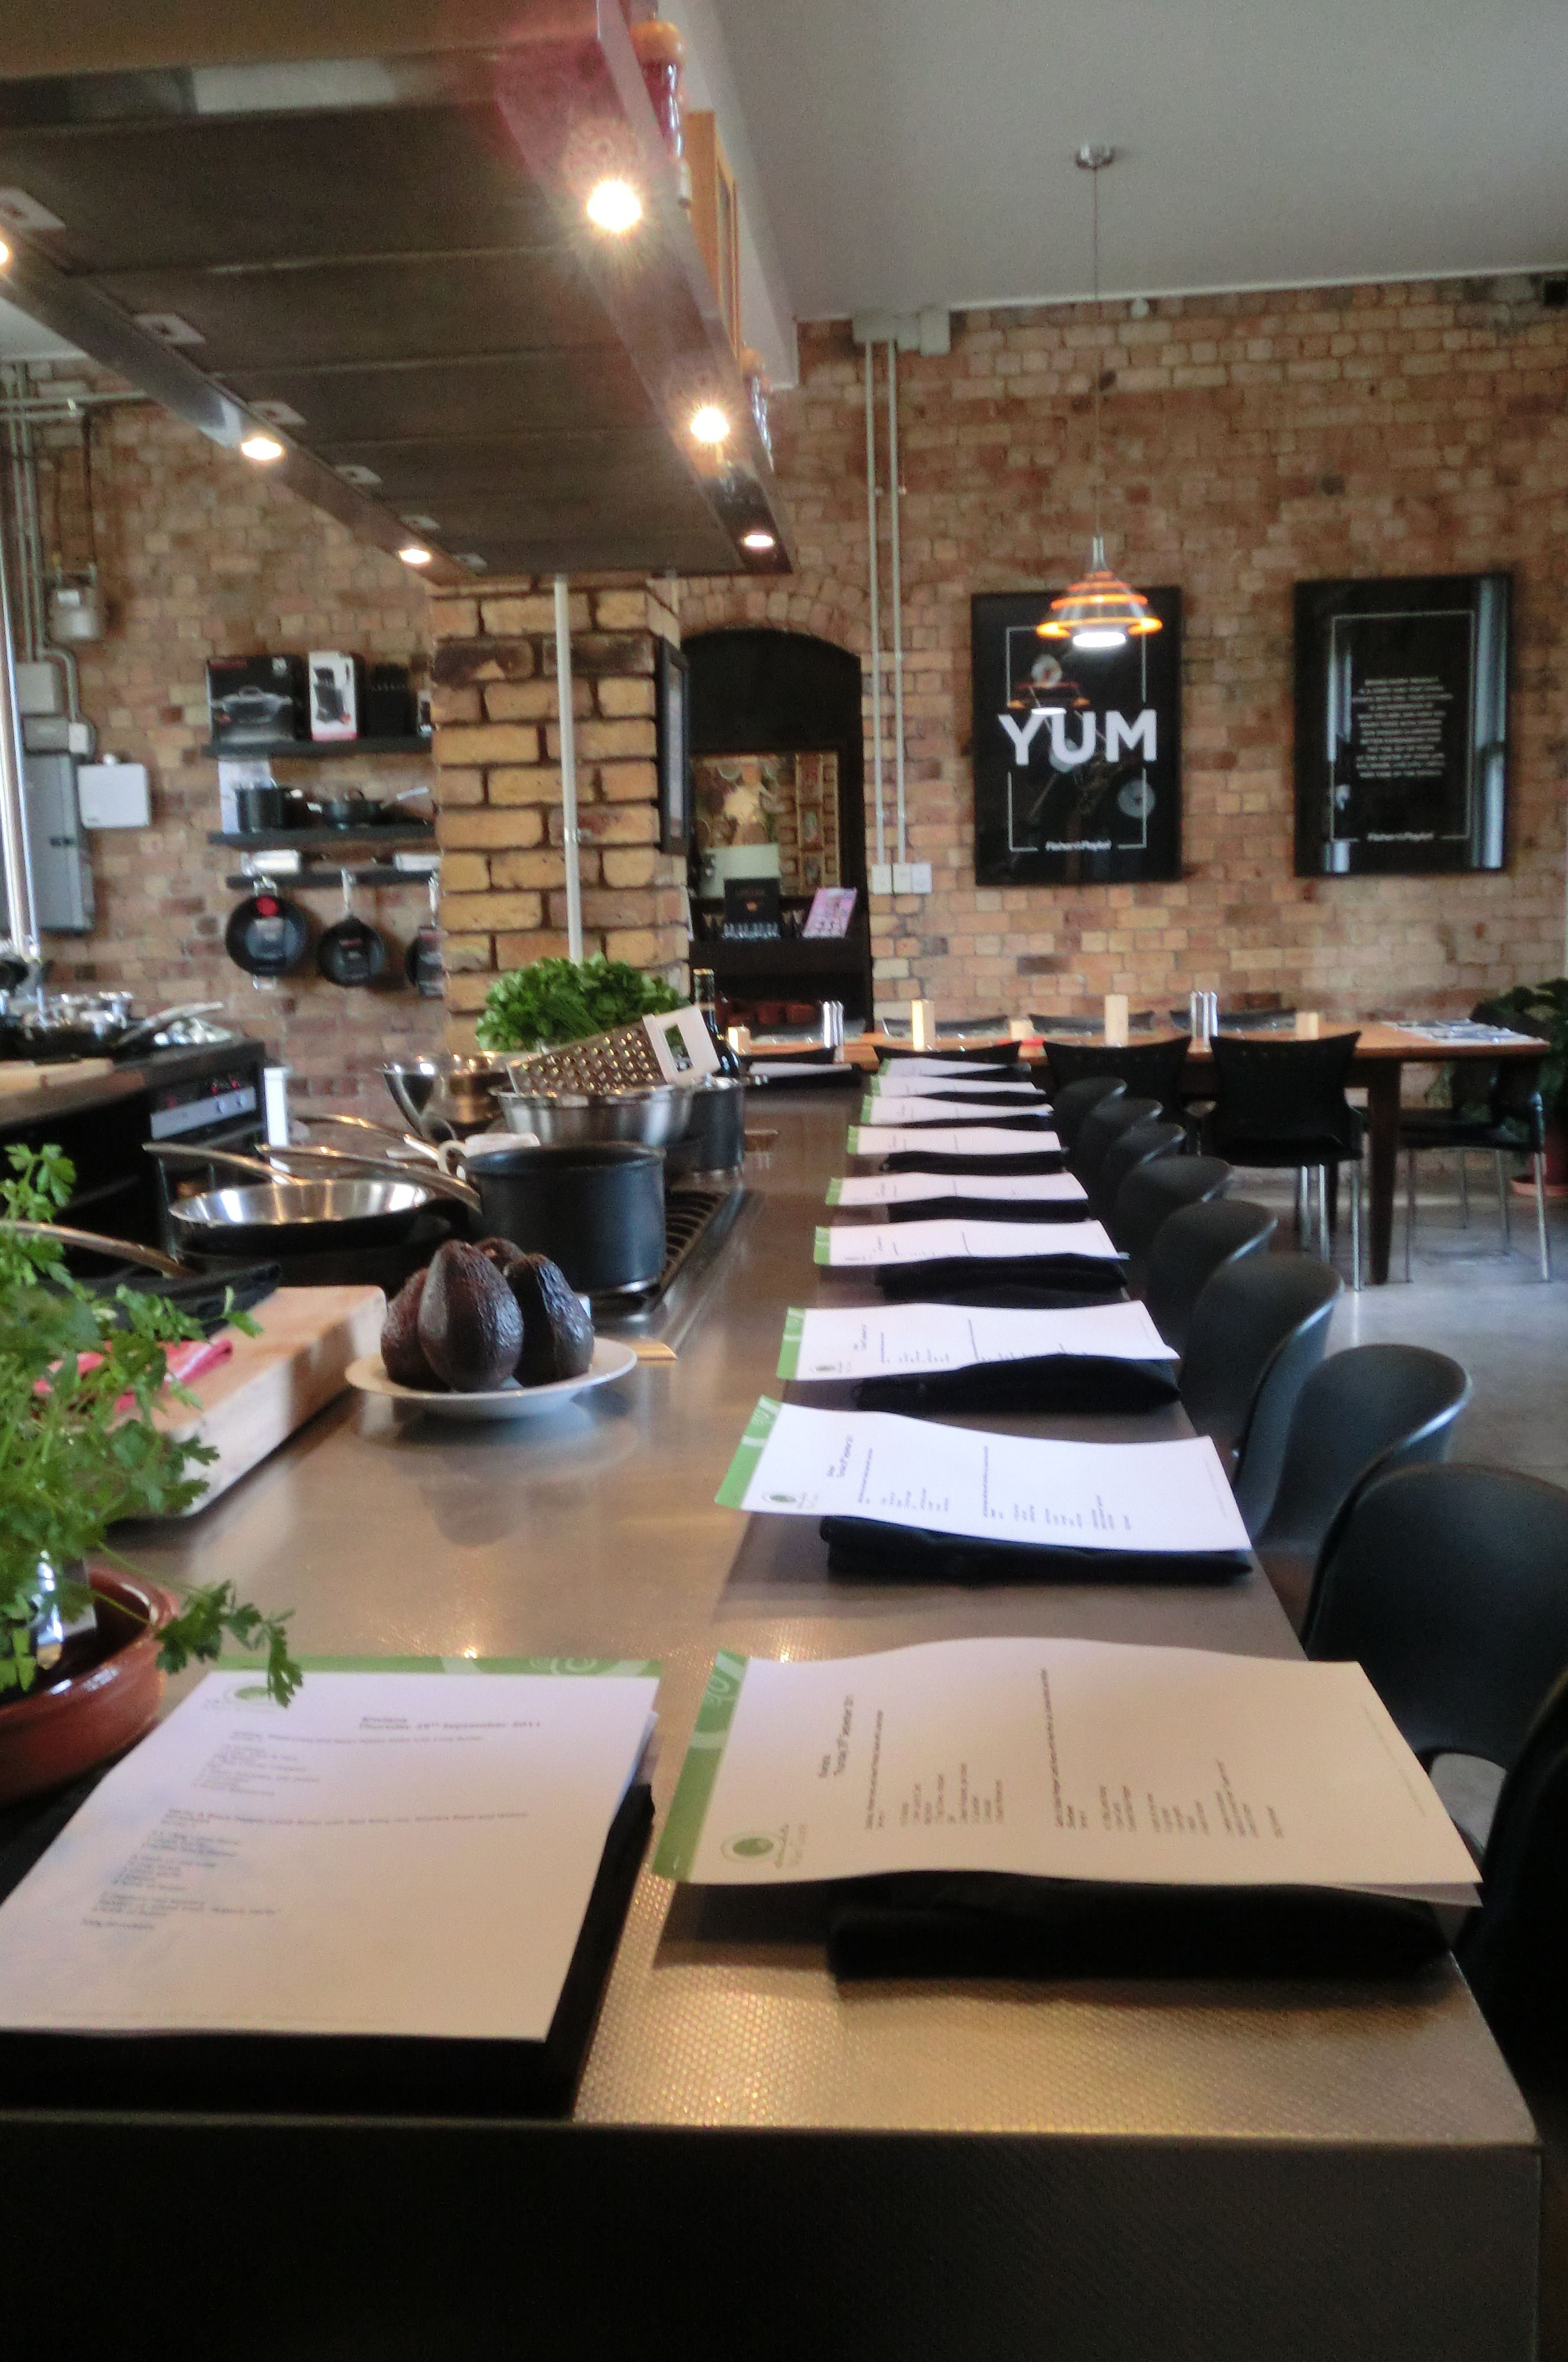 Advertise a New Restaurant - Creating an Effective Plan